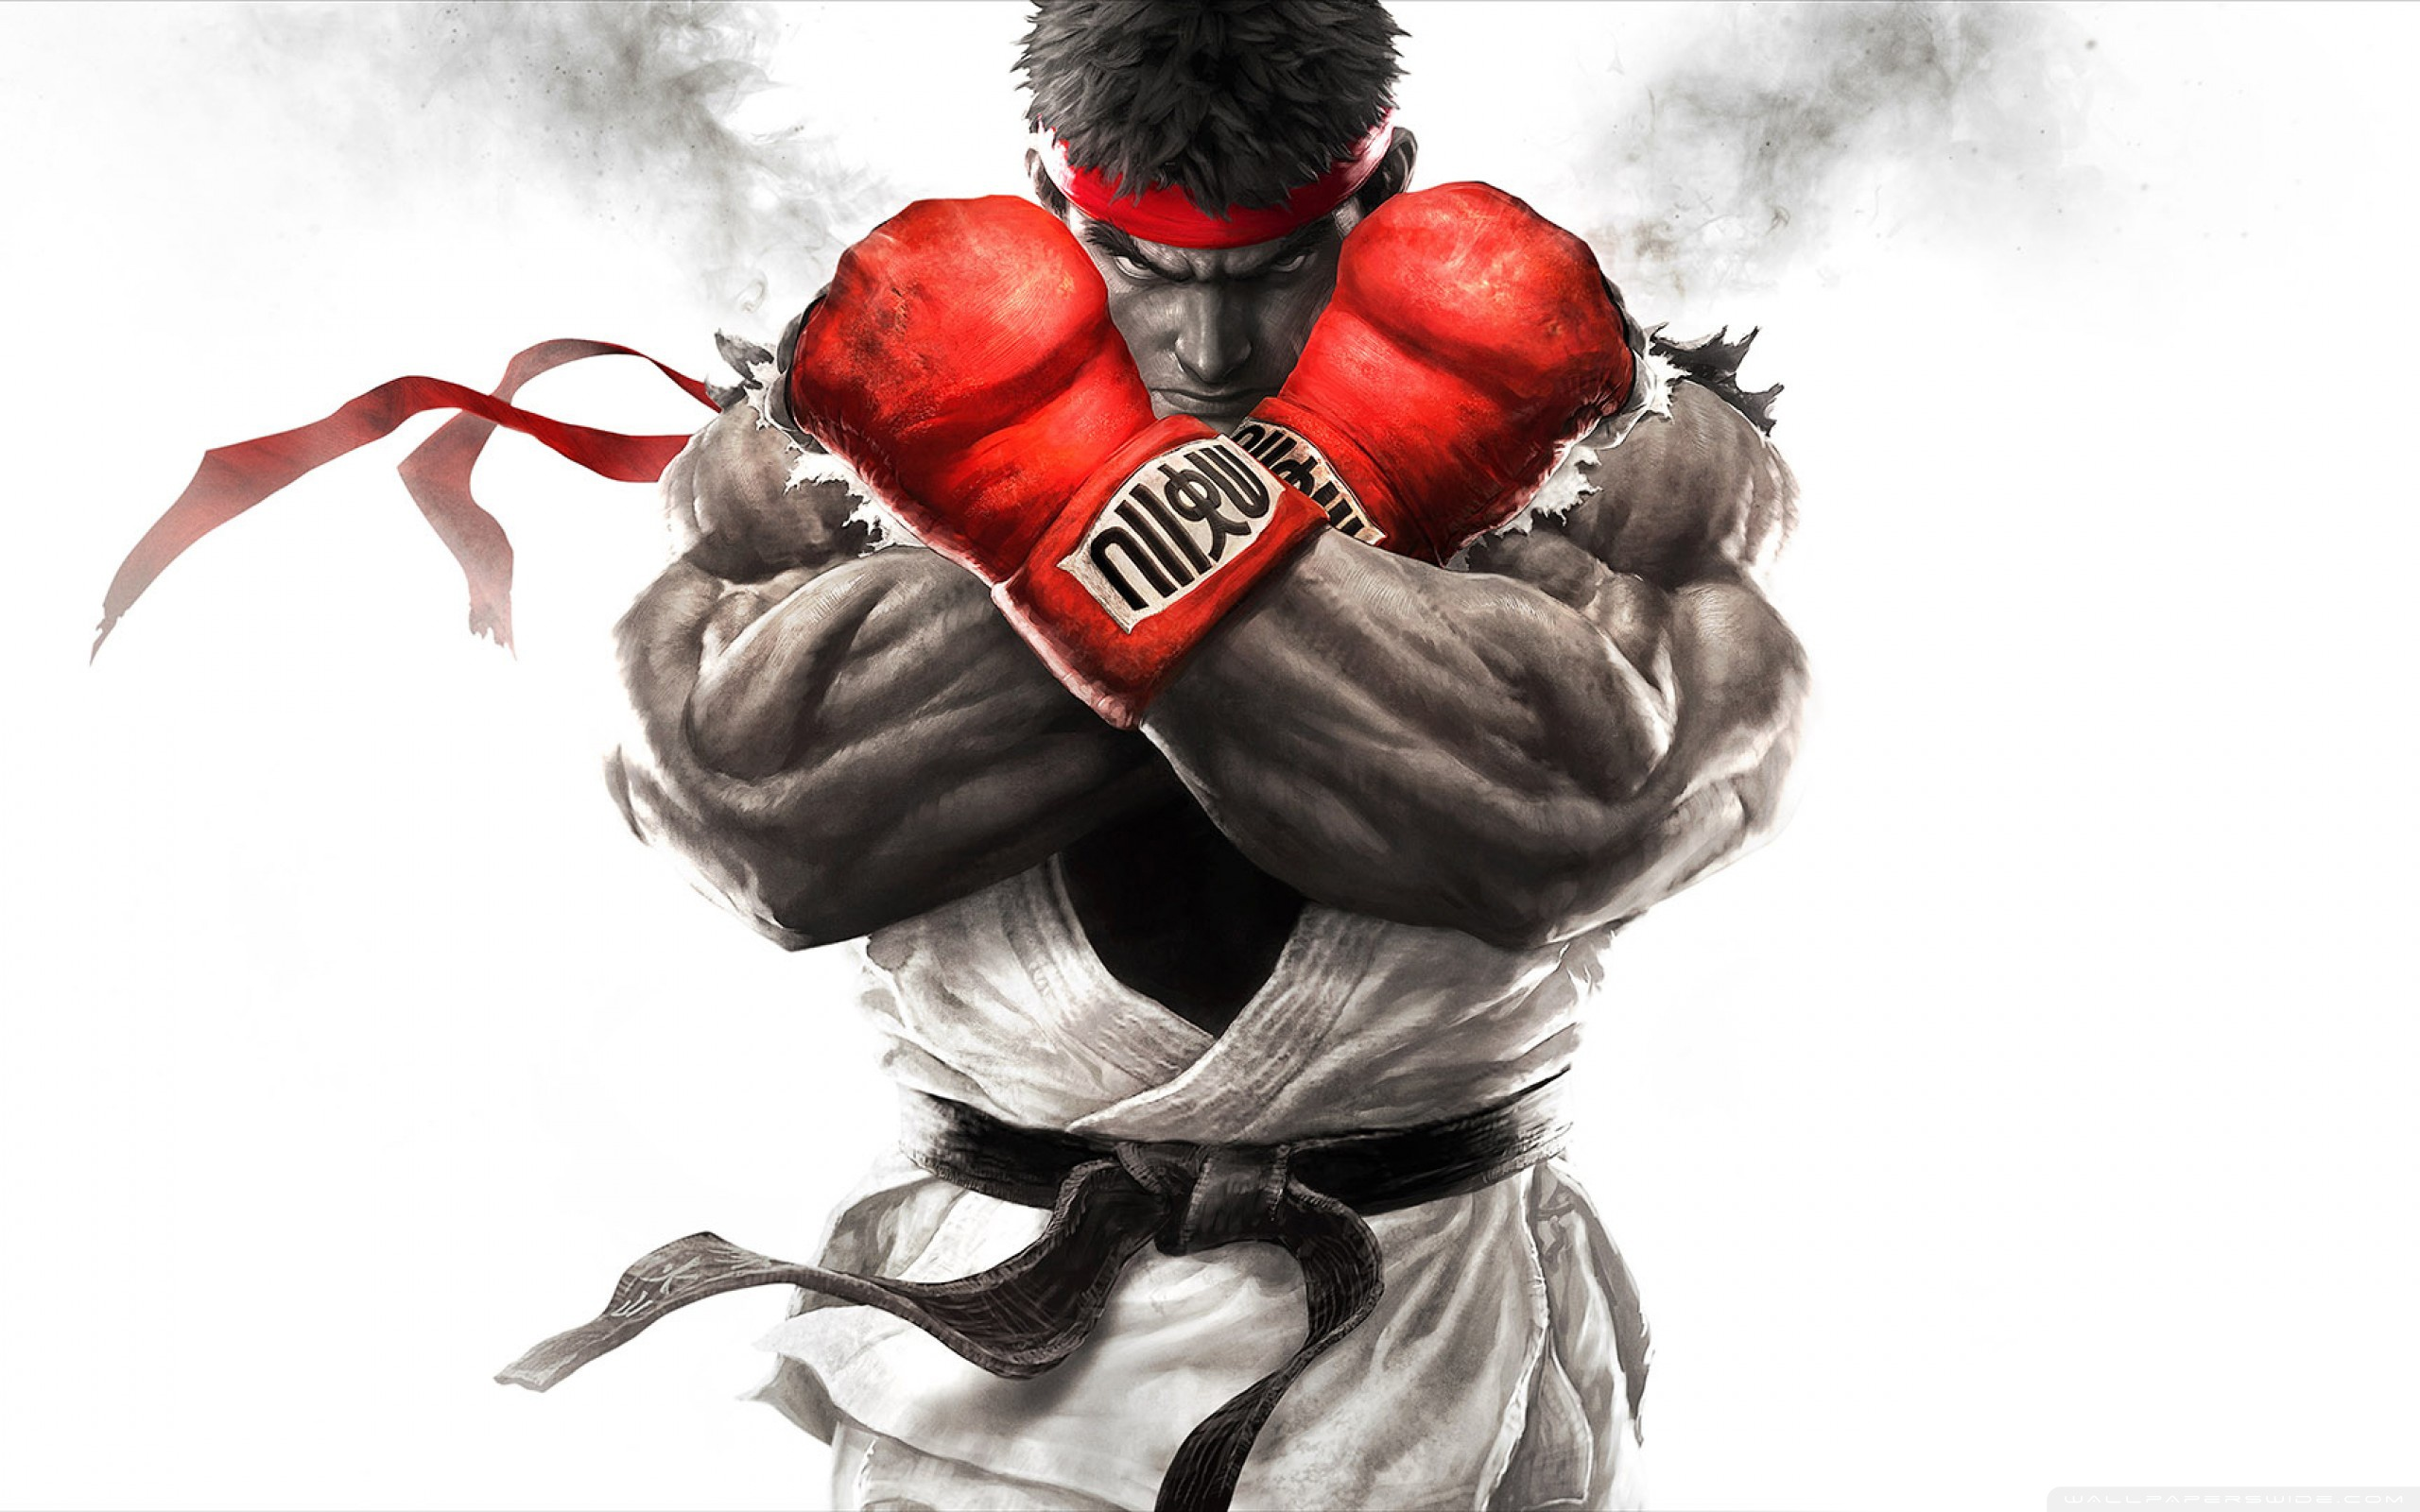 Street Fight Wallpapers